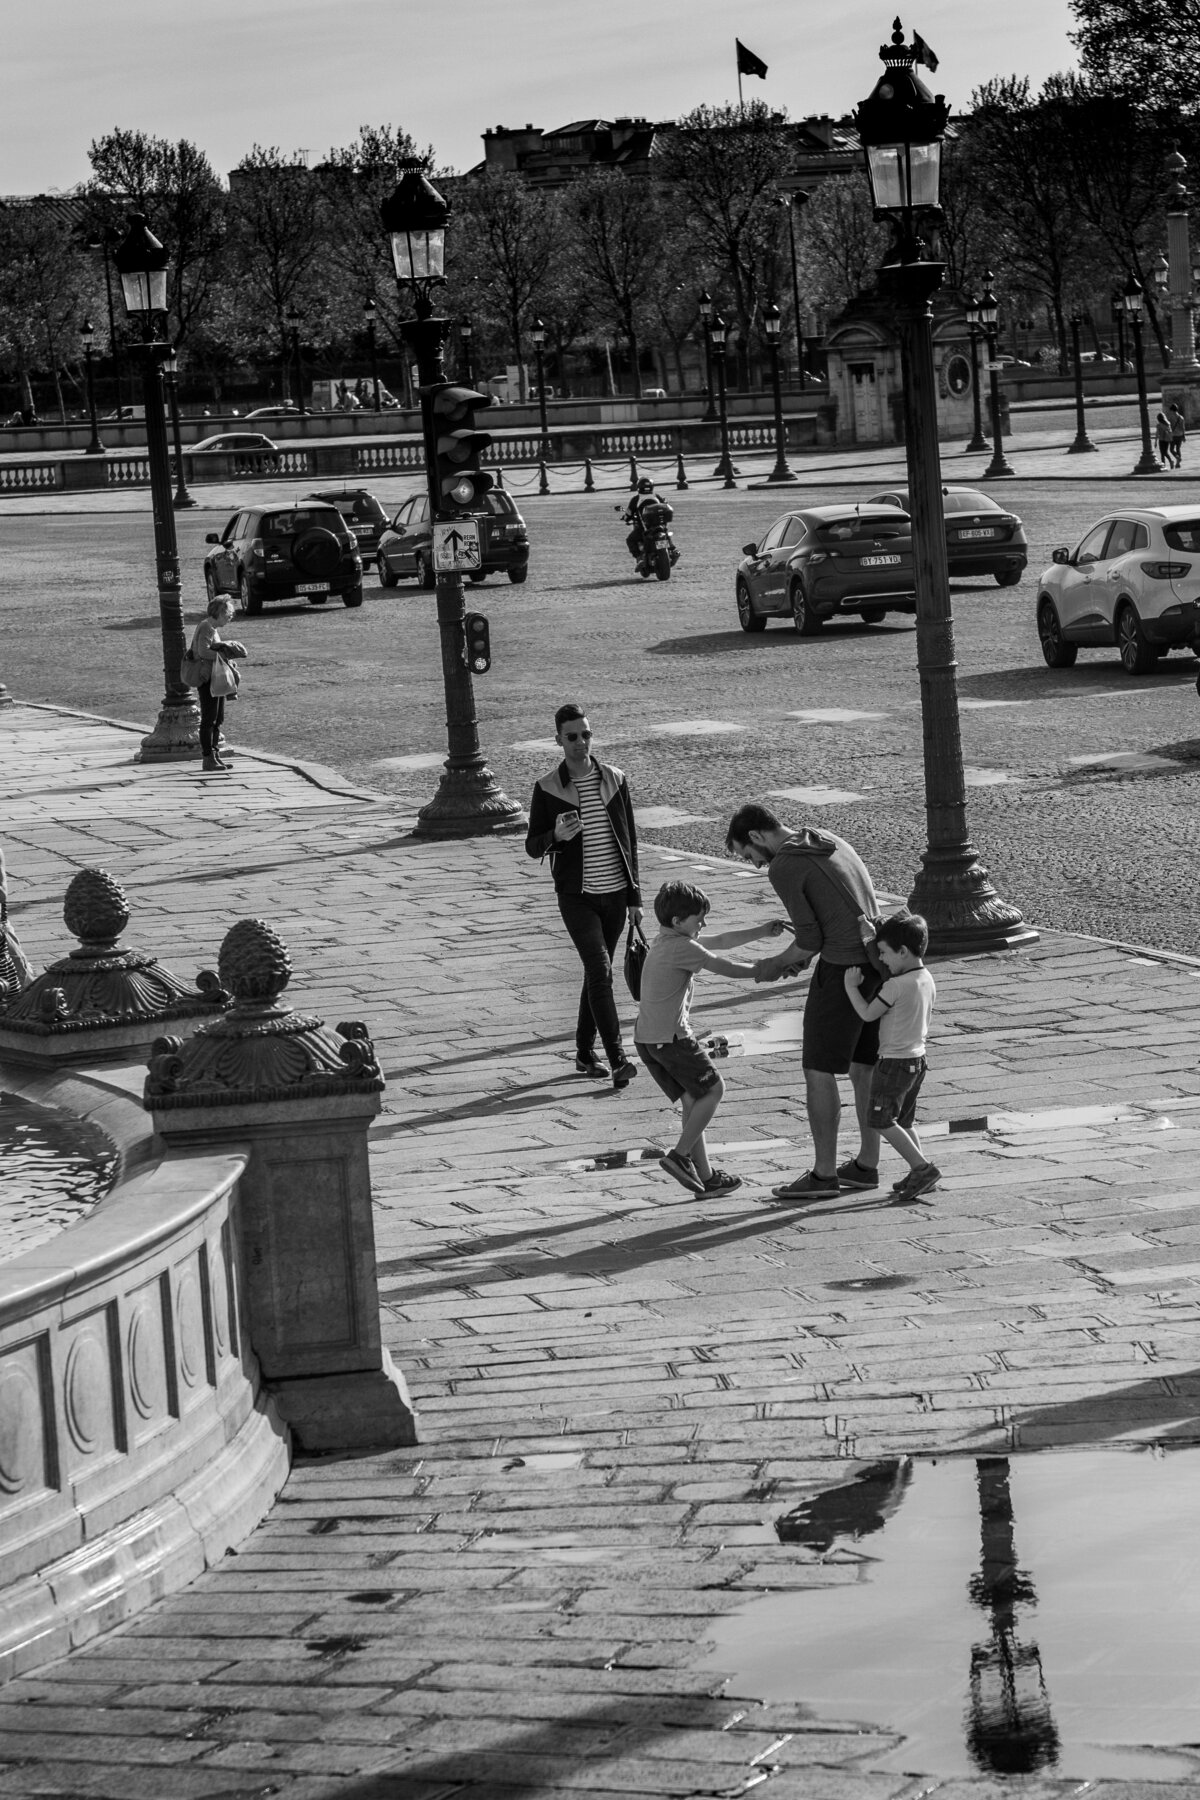 Streets of Paris BW 126